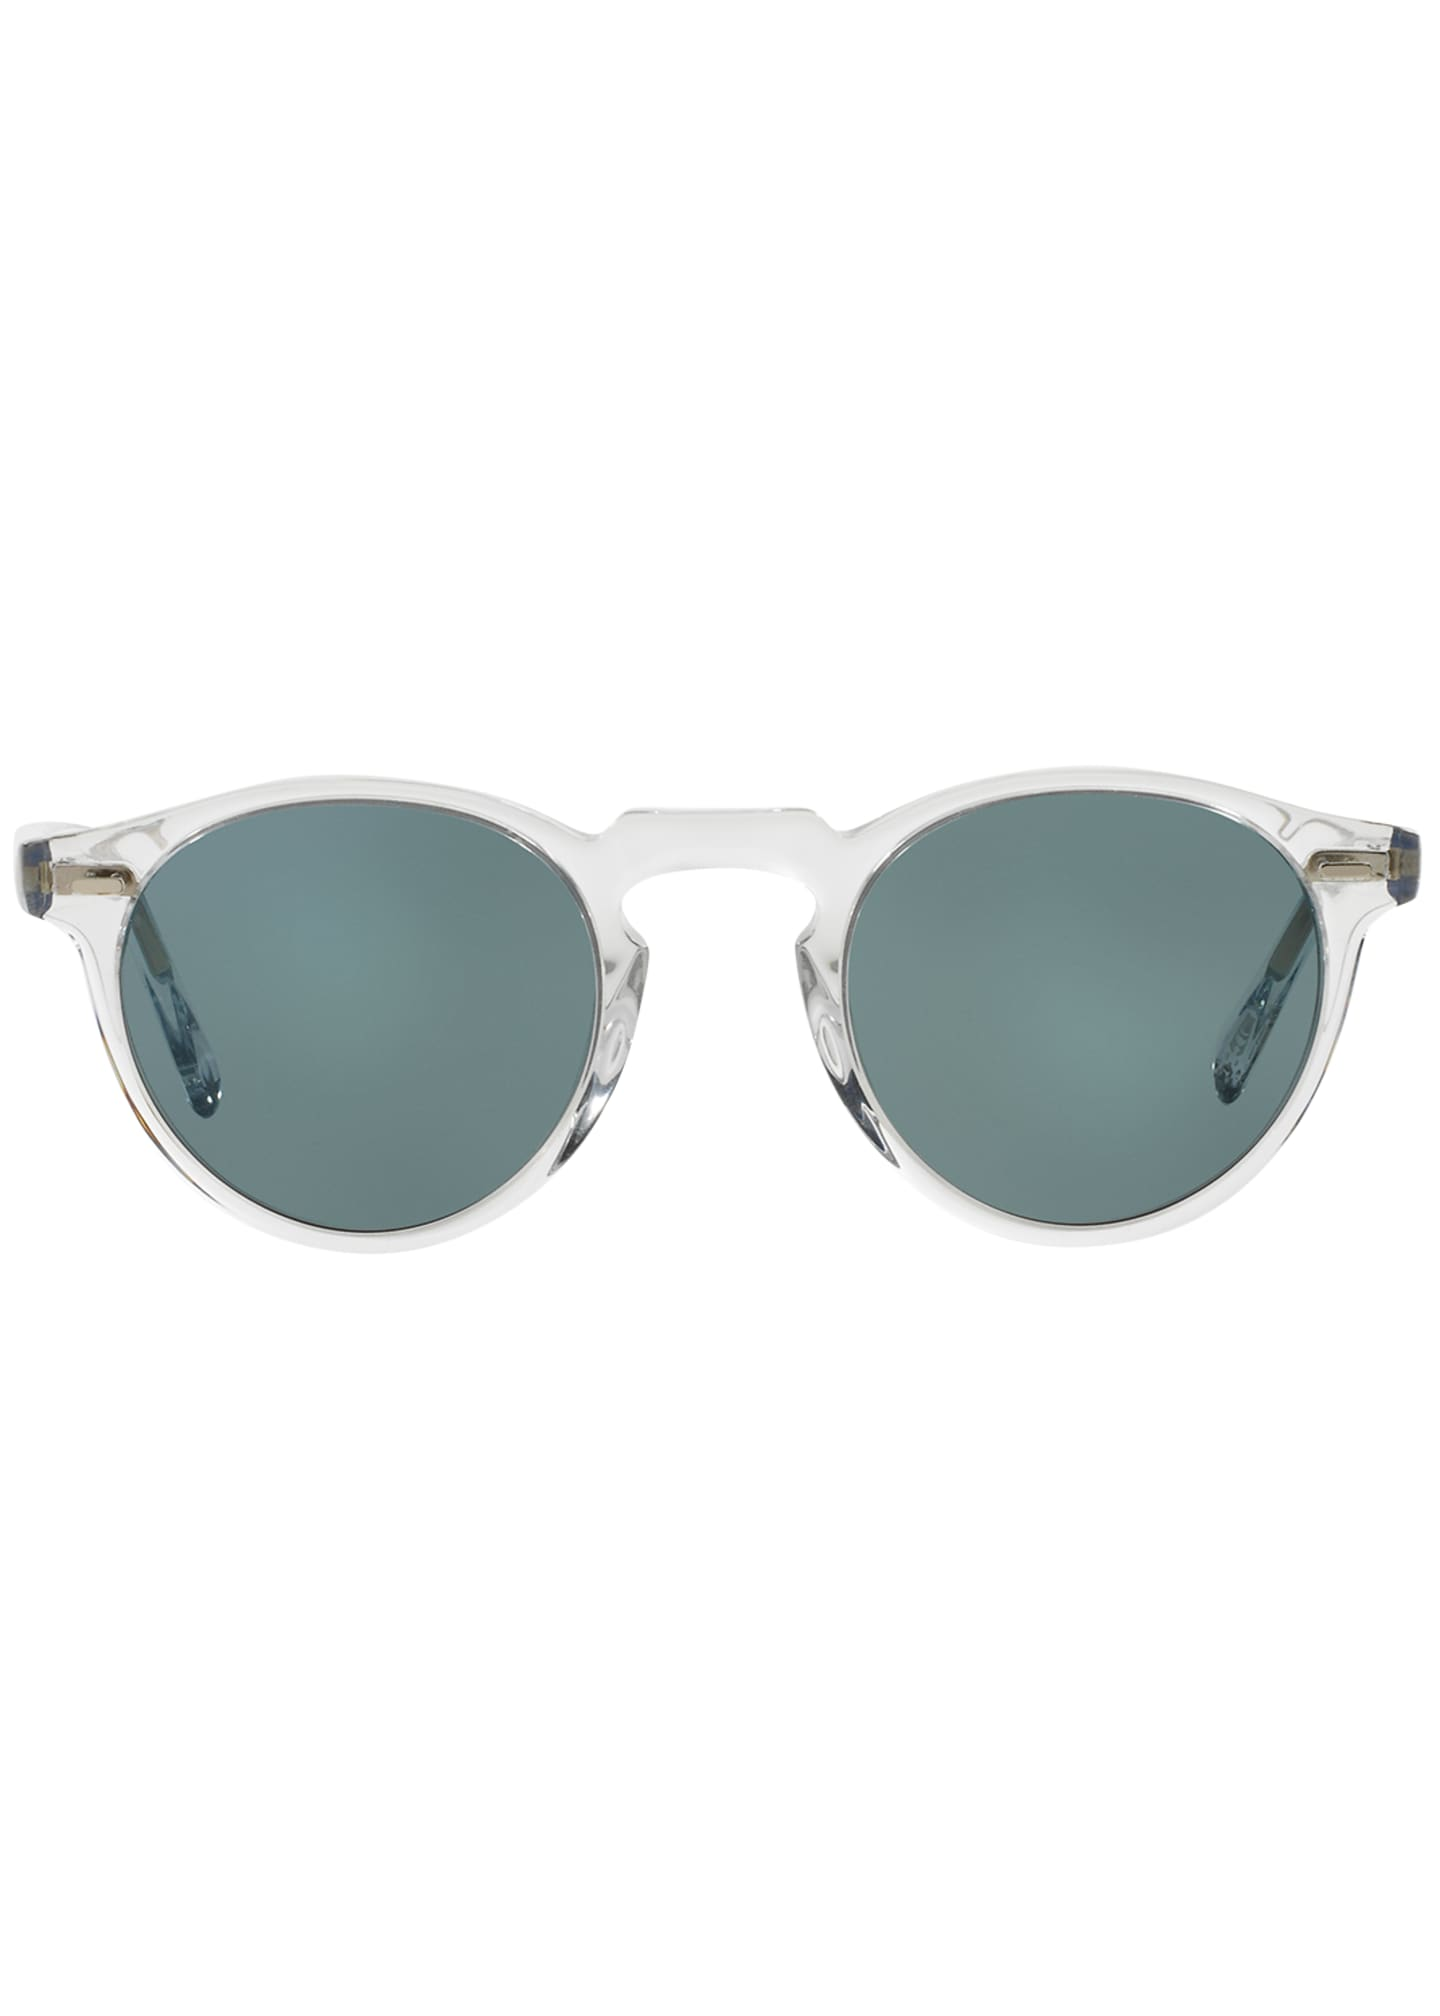 Image 2 of 2: Men's Gregory Peck 47 Round Sunglasses